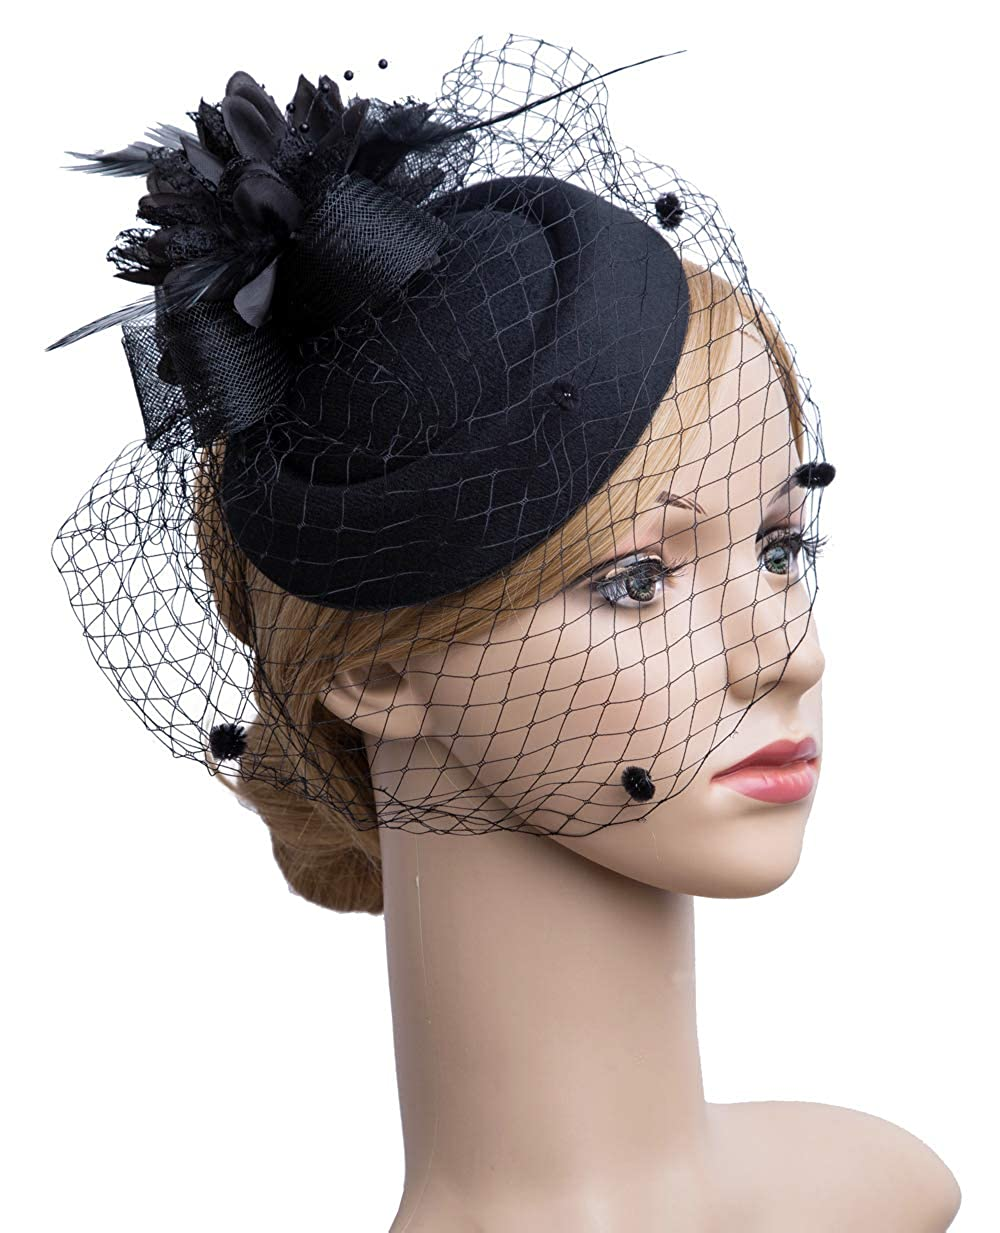 aca4a93d 1950s Women's Hat Styles & History Cizoe Fascinator Hair Clip Pillbox Hat  Bowler Feather Flower Veil